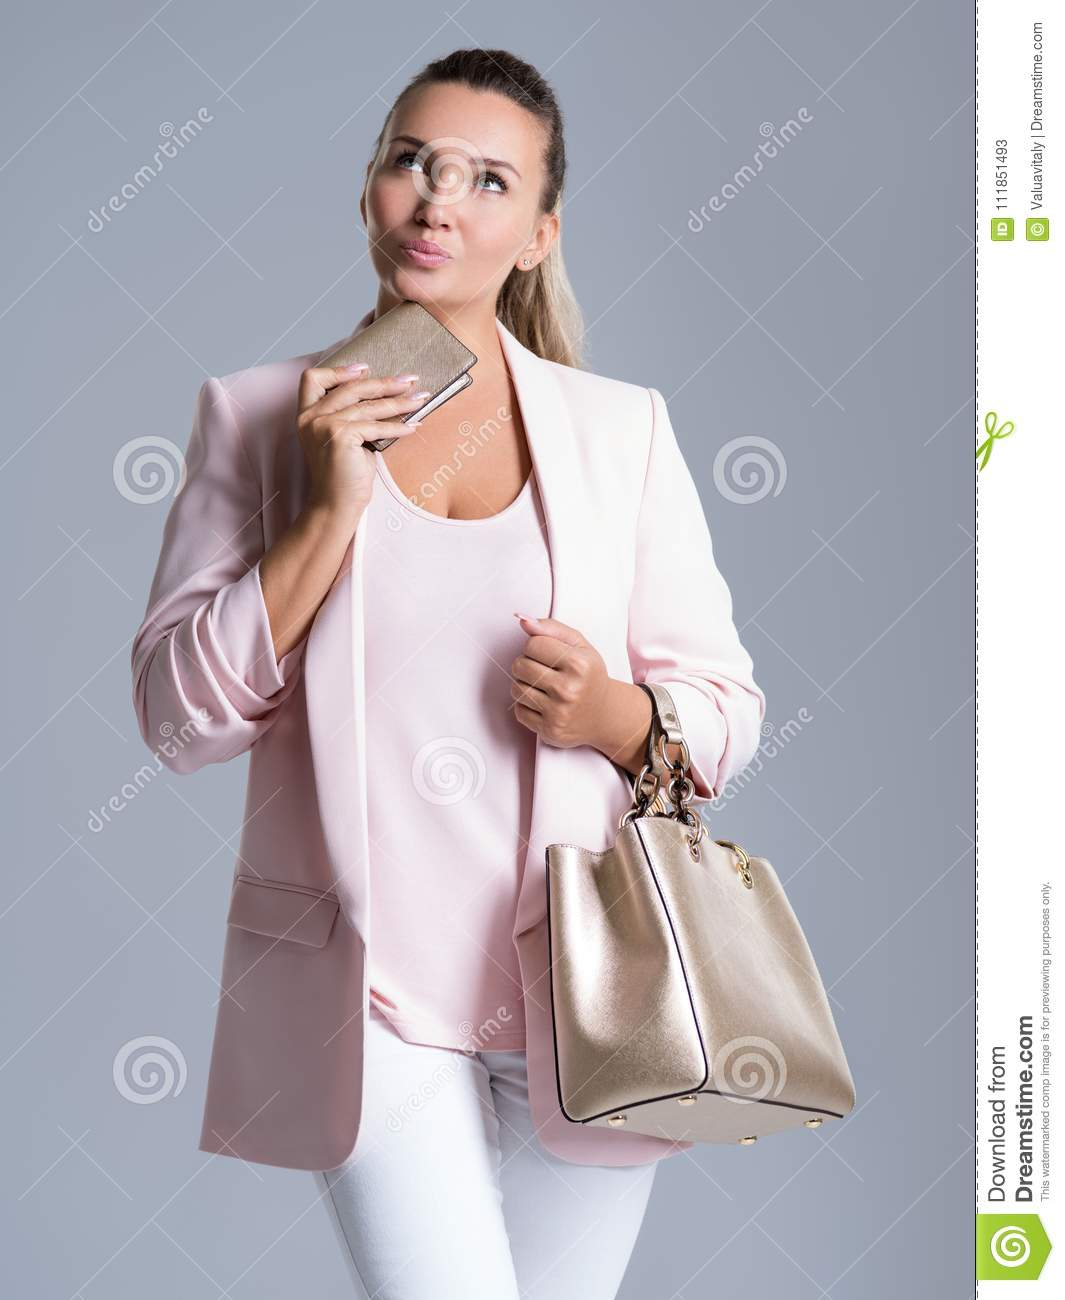 Portrait of pensive woman with purse in hand and a handbag in ha